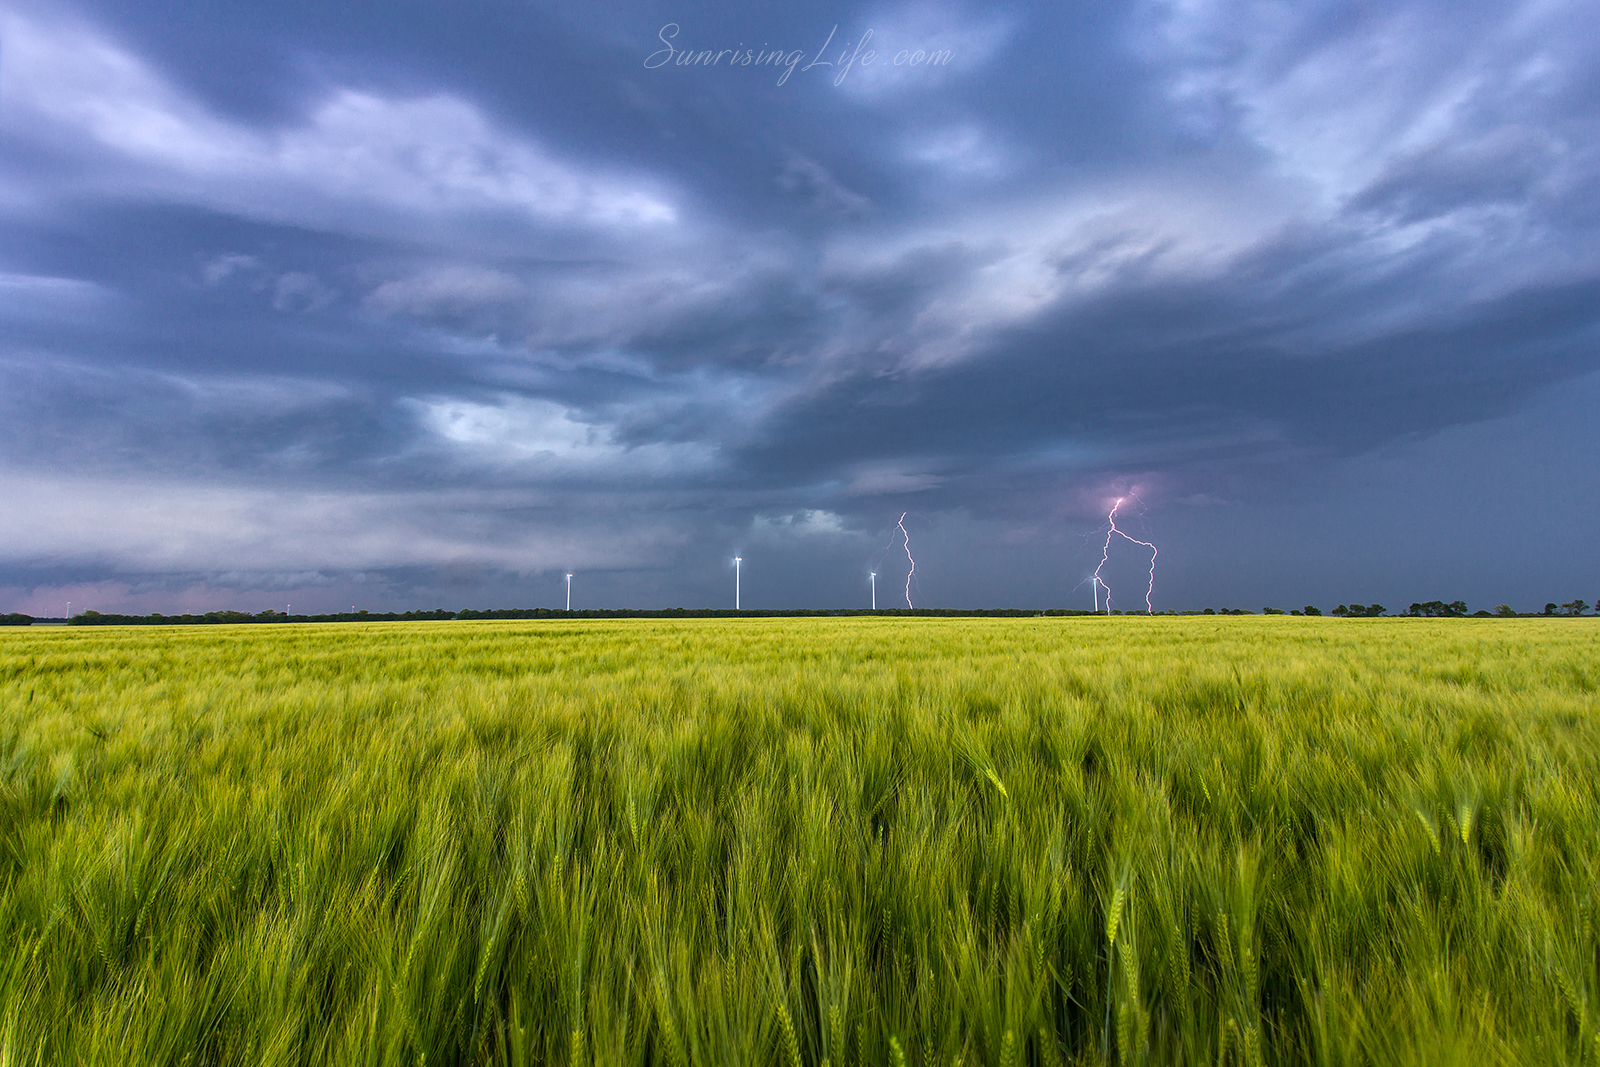 Storm in the field